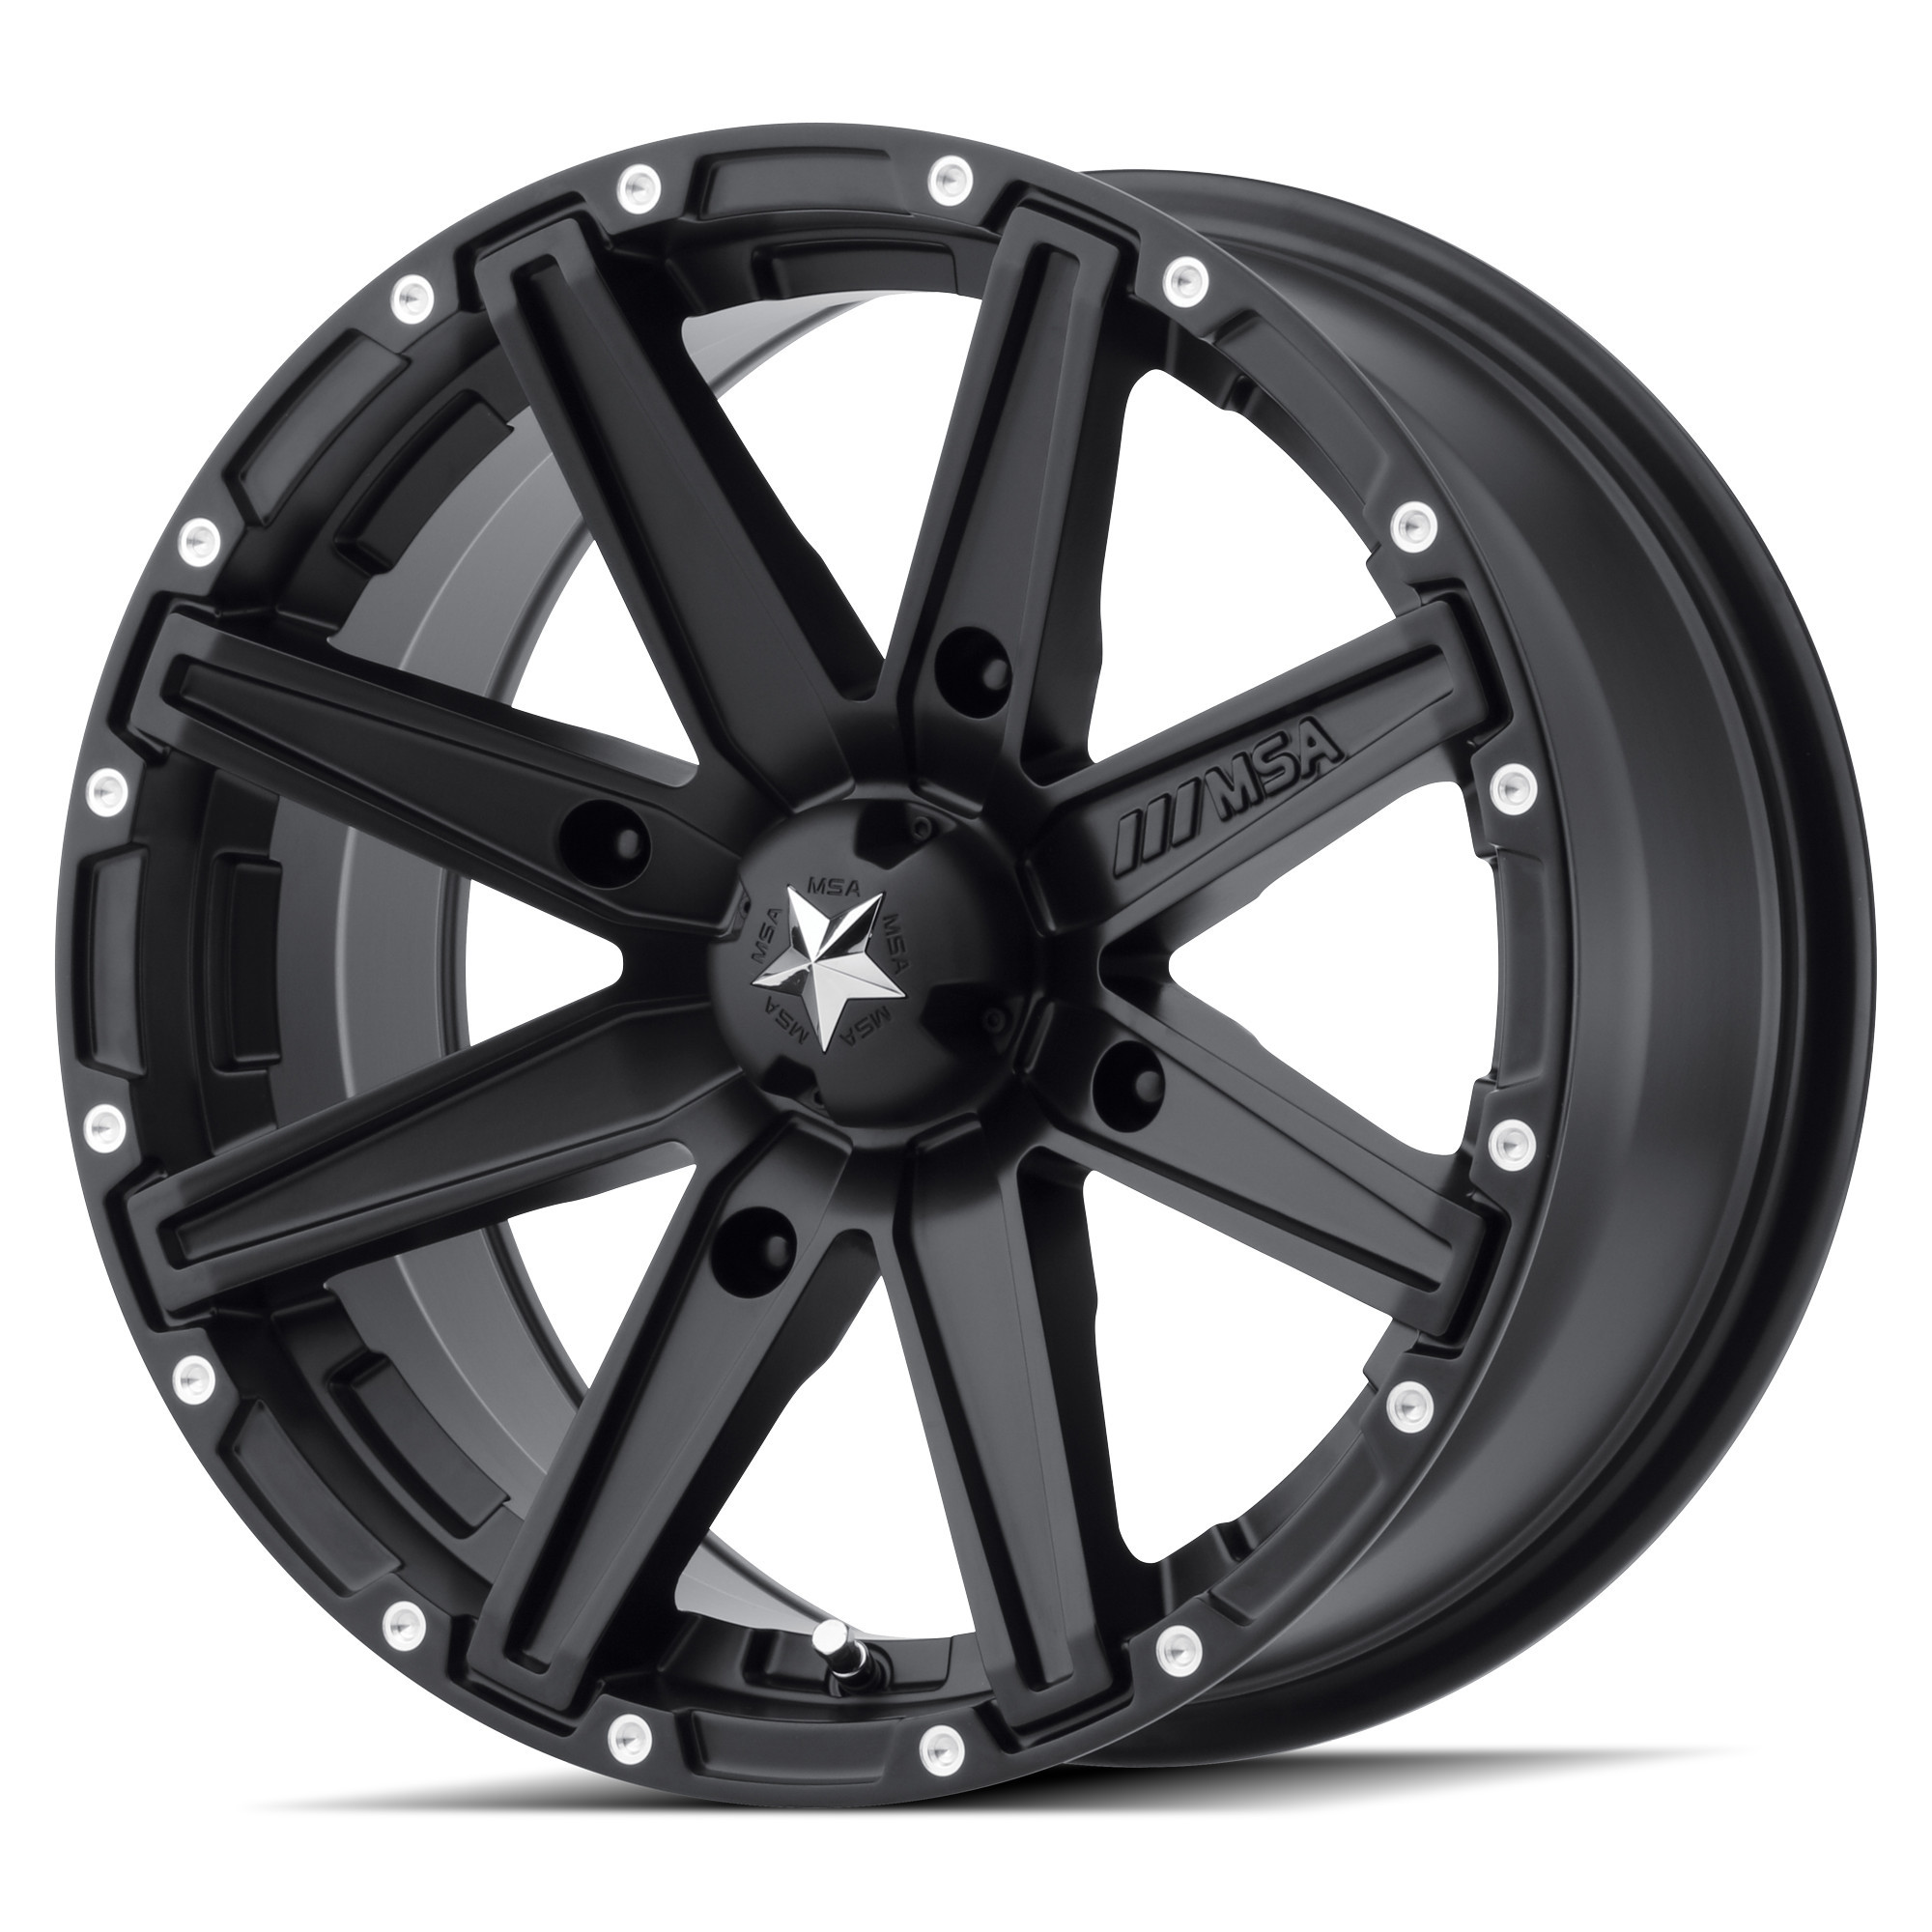 MSA 14x7 4x156 M33 Clutch Satin Black vannesarja Polaris